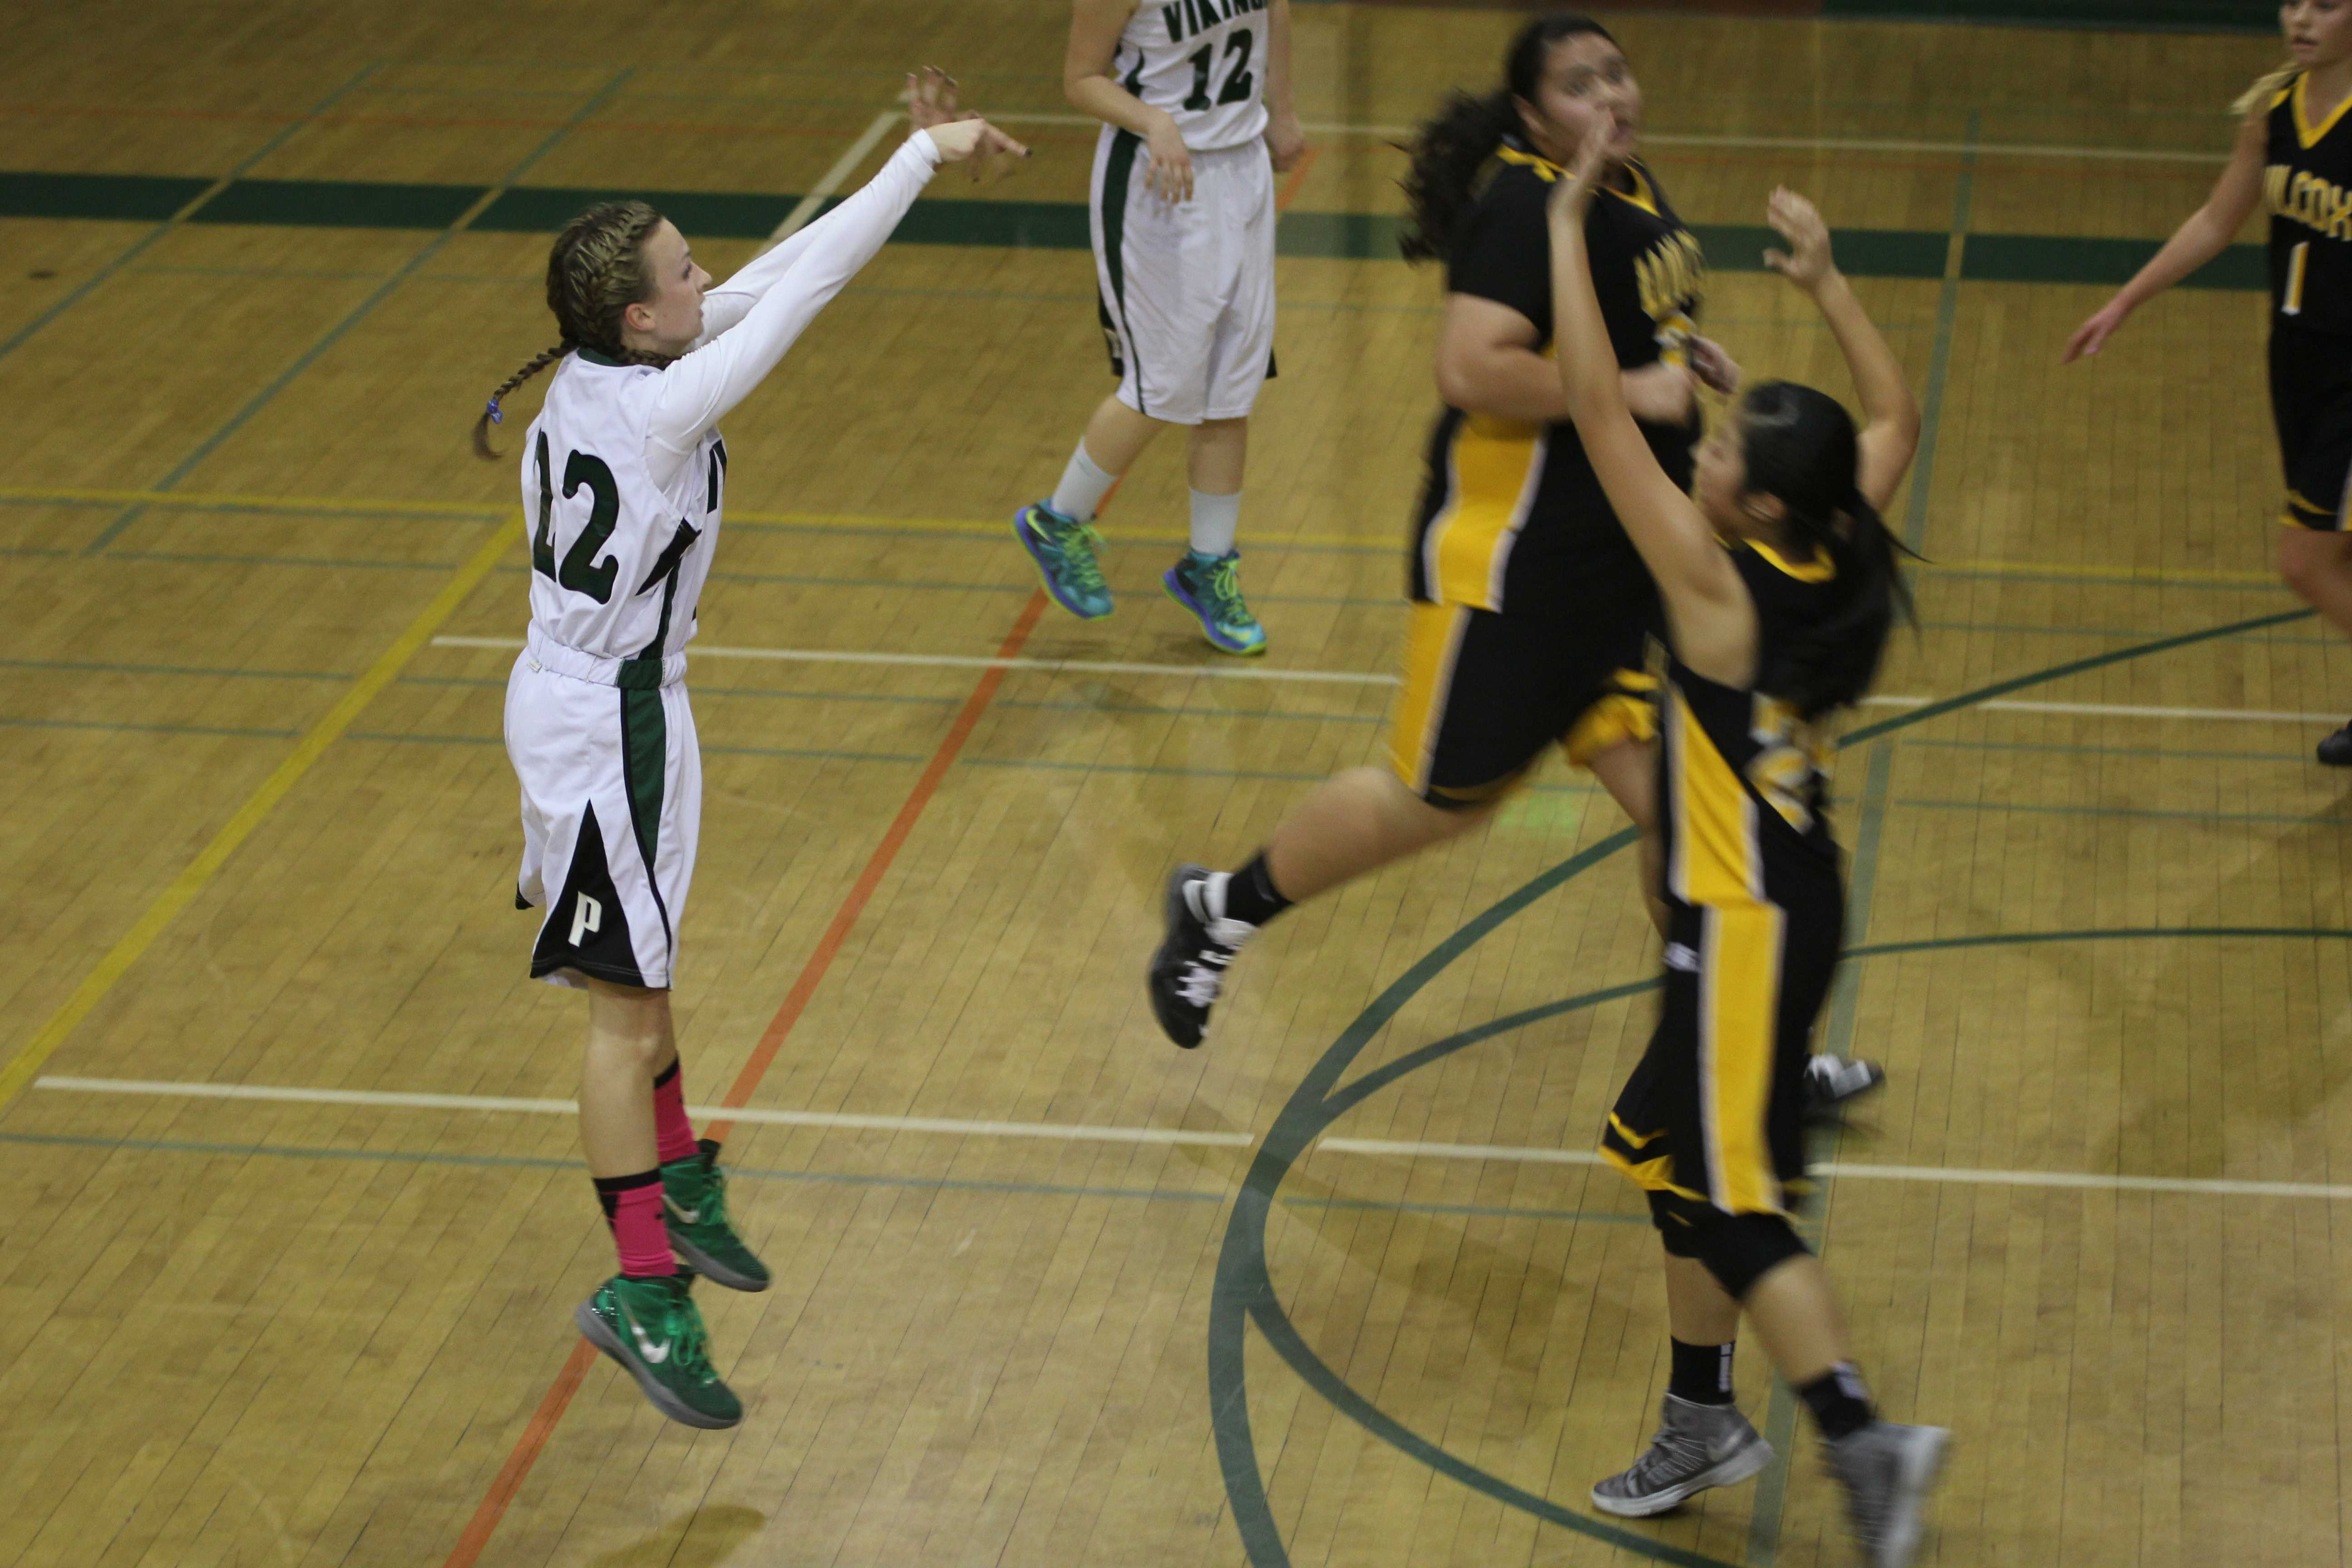 Sophomore Maddy Atwater follows through on a three-pointer. Photo by Maddy Jones.